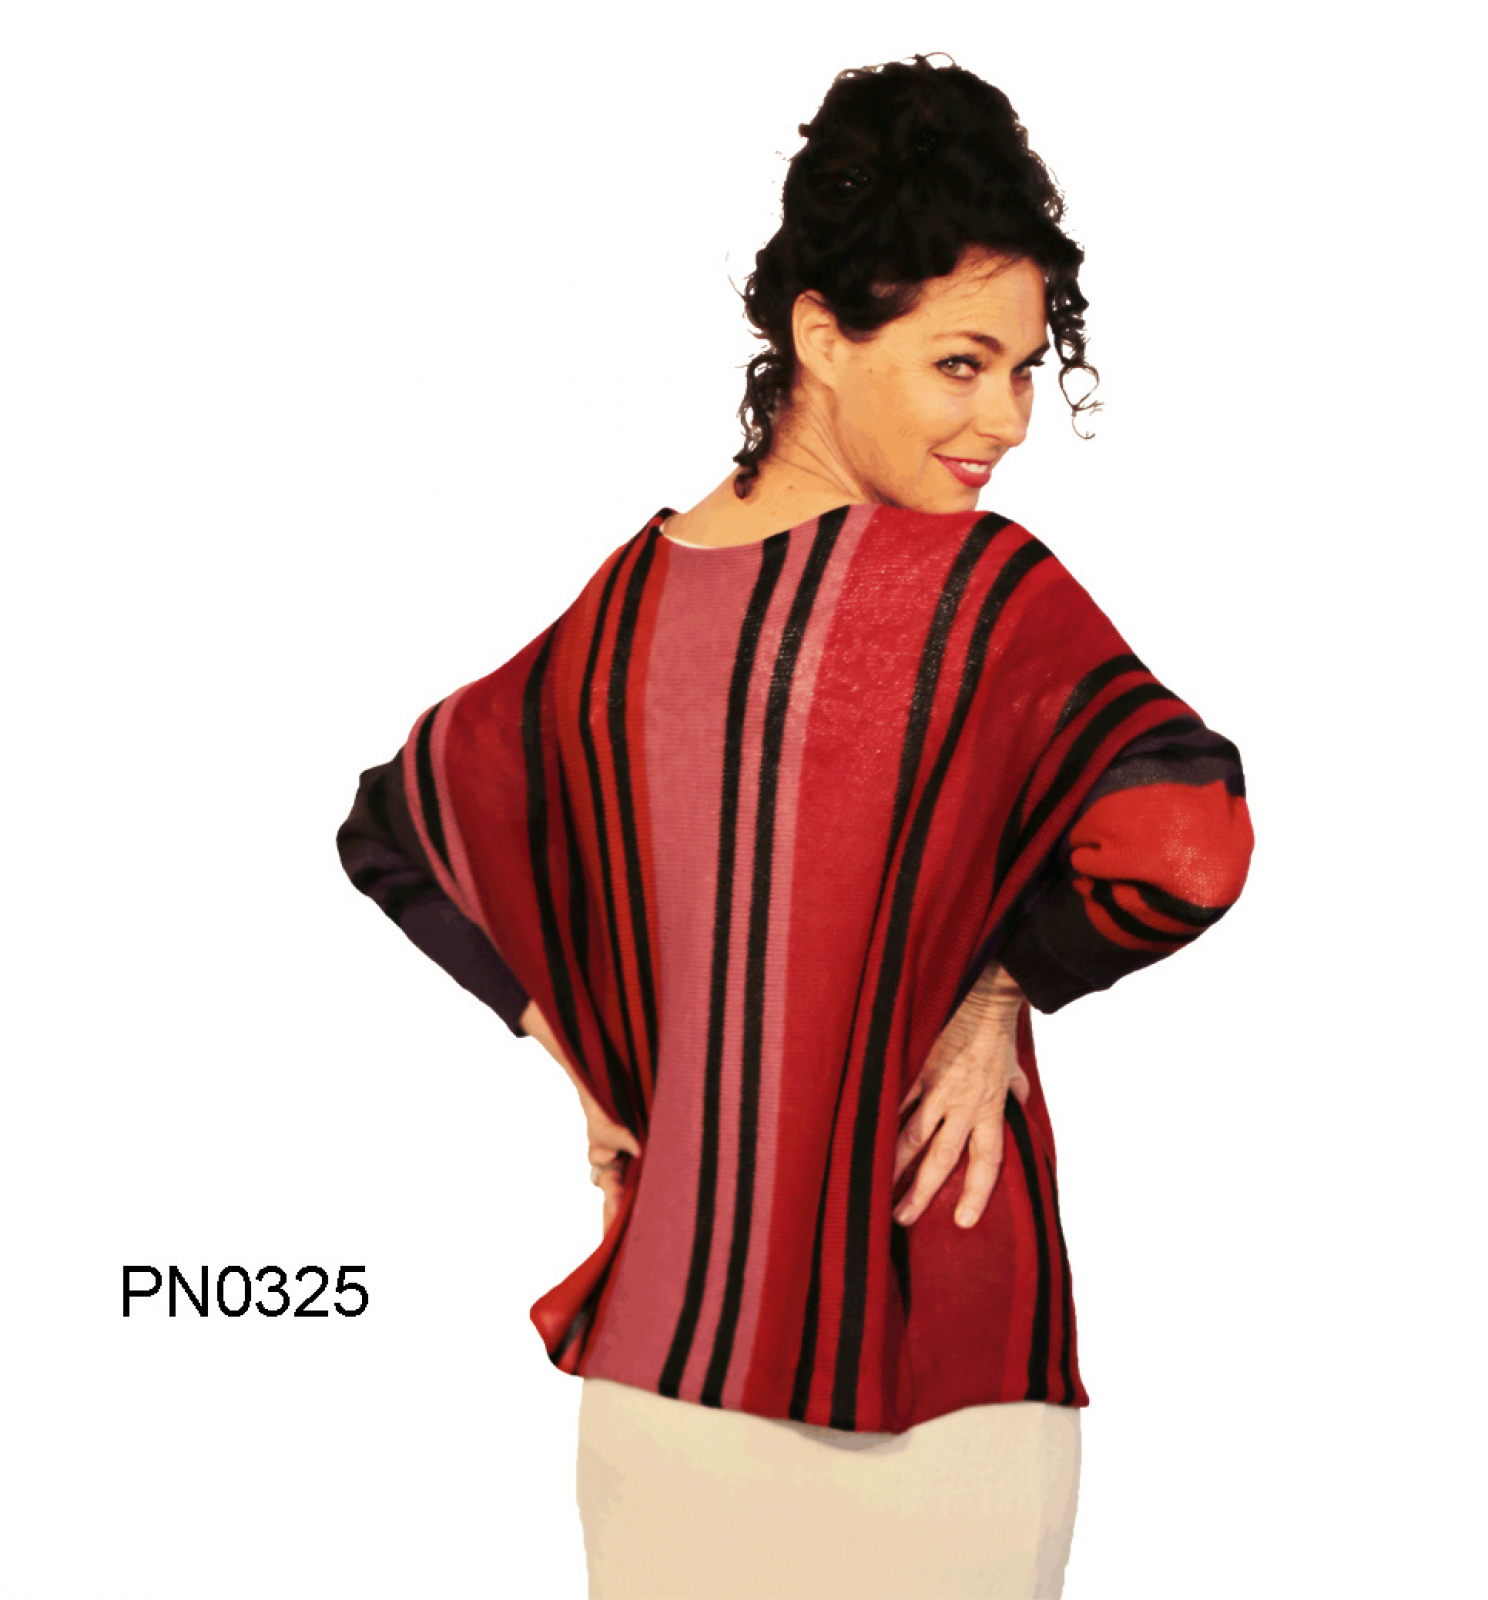 Womens Alpaca Sweater in Butterfly-Form, red colors, long sleeves